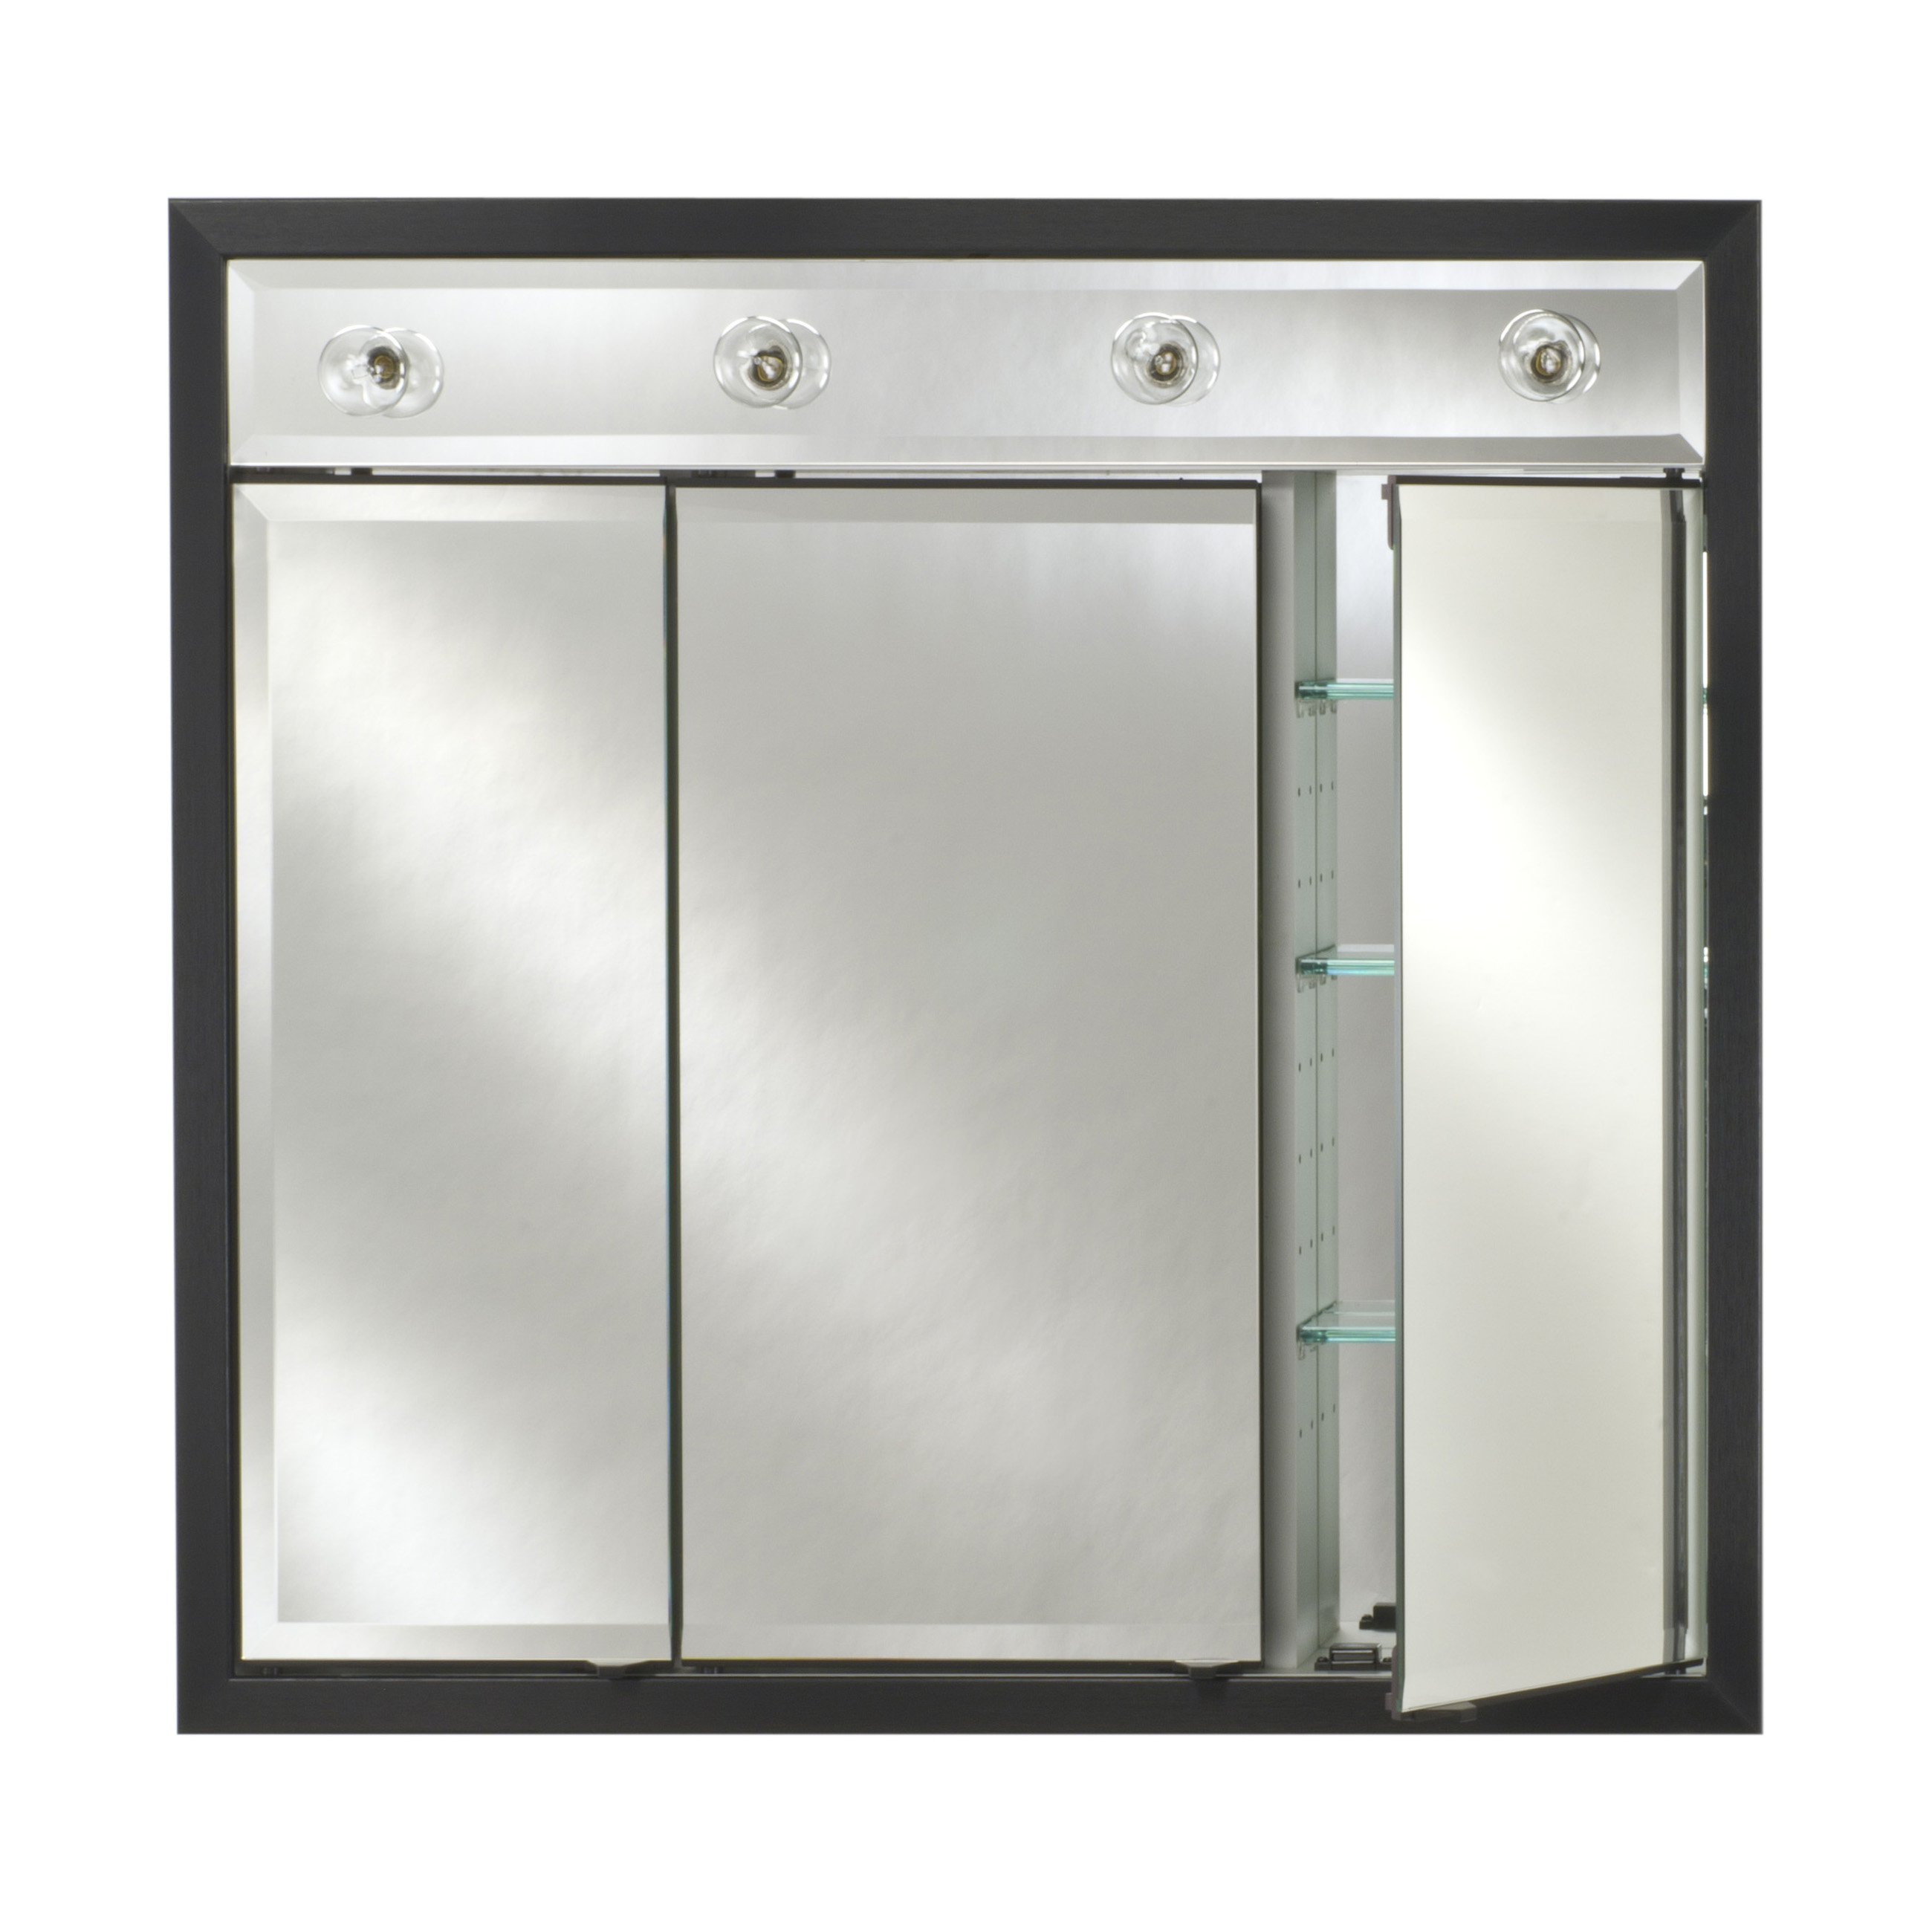 Afina Signature Contemporary Lighted Triple Door 44W x 34H in. Recessed Medicine Cabinet